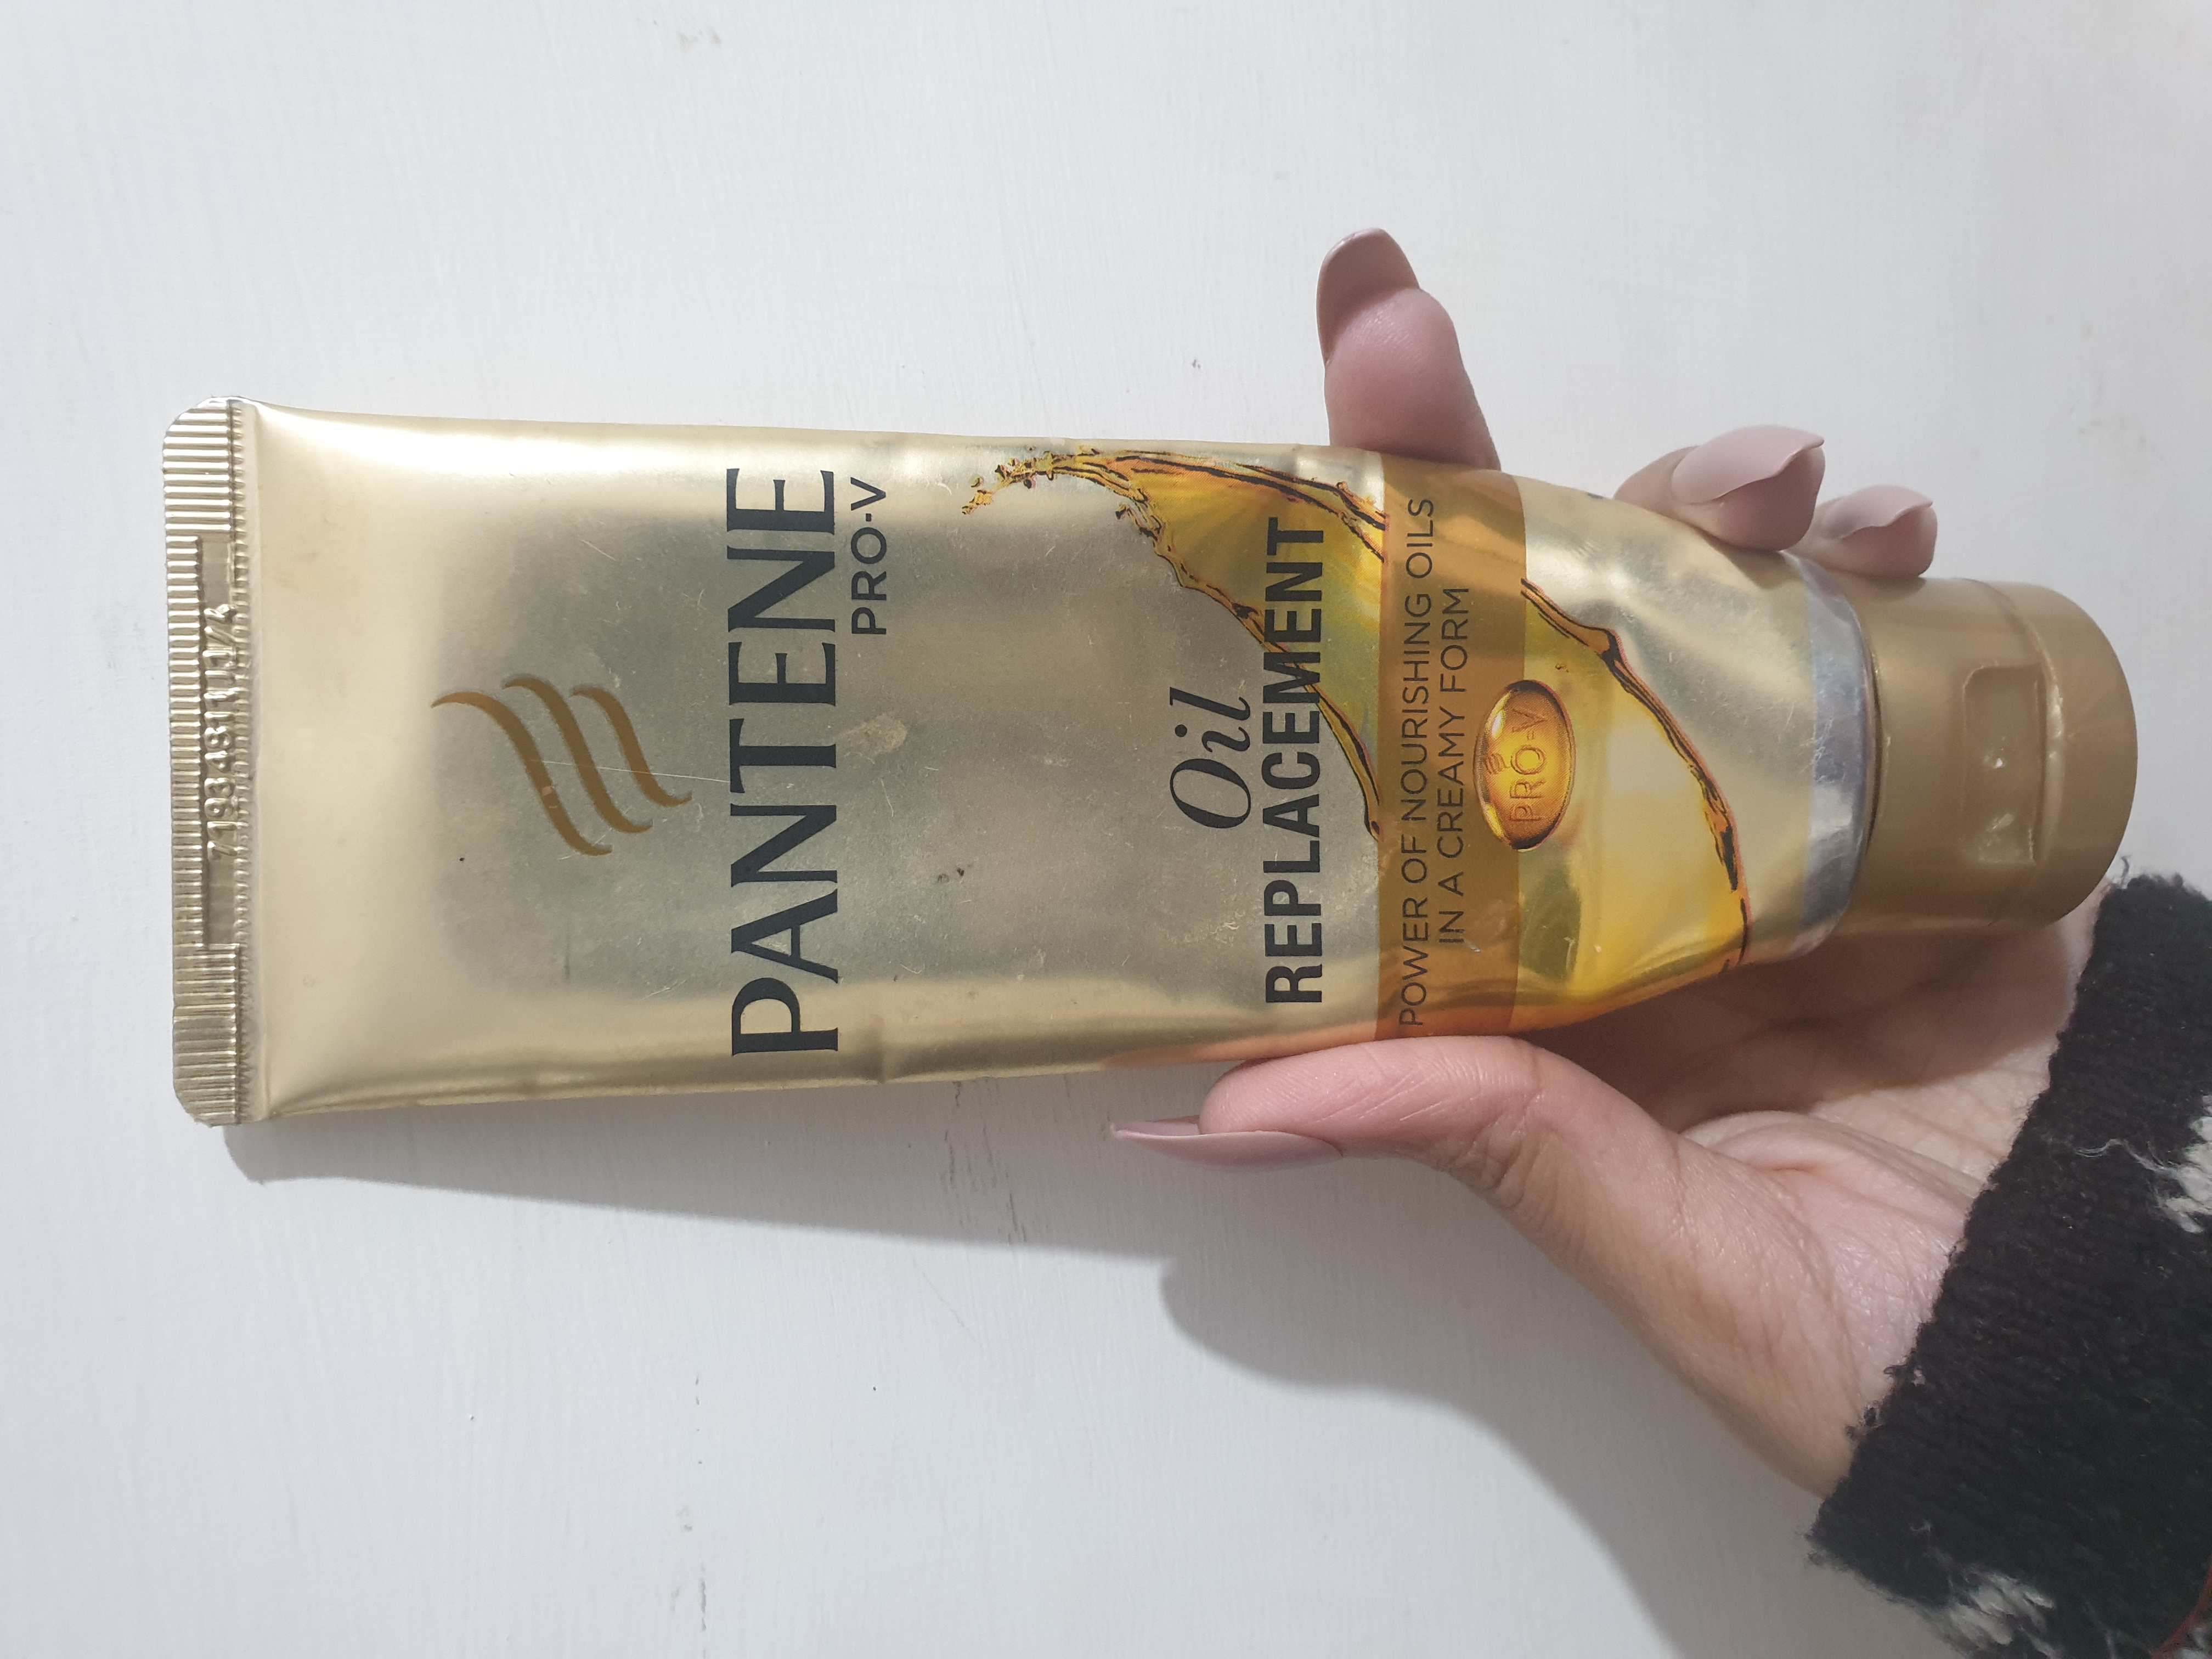 Pantene Pro-V Oil Replacement-Multitasking Product-By vitika_singh